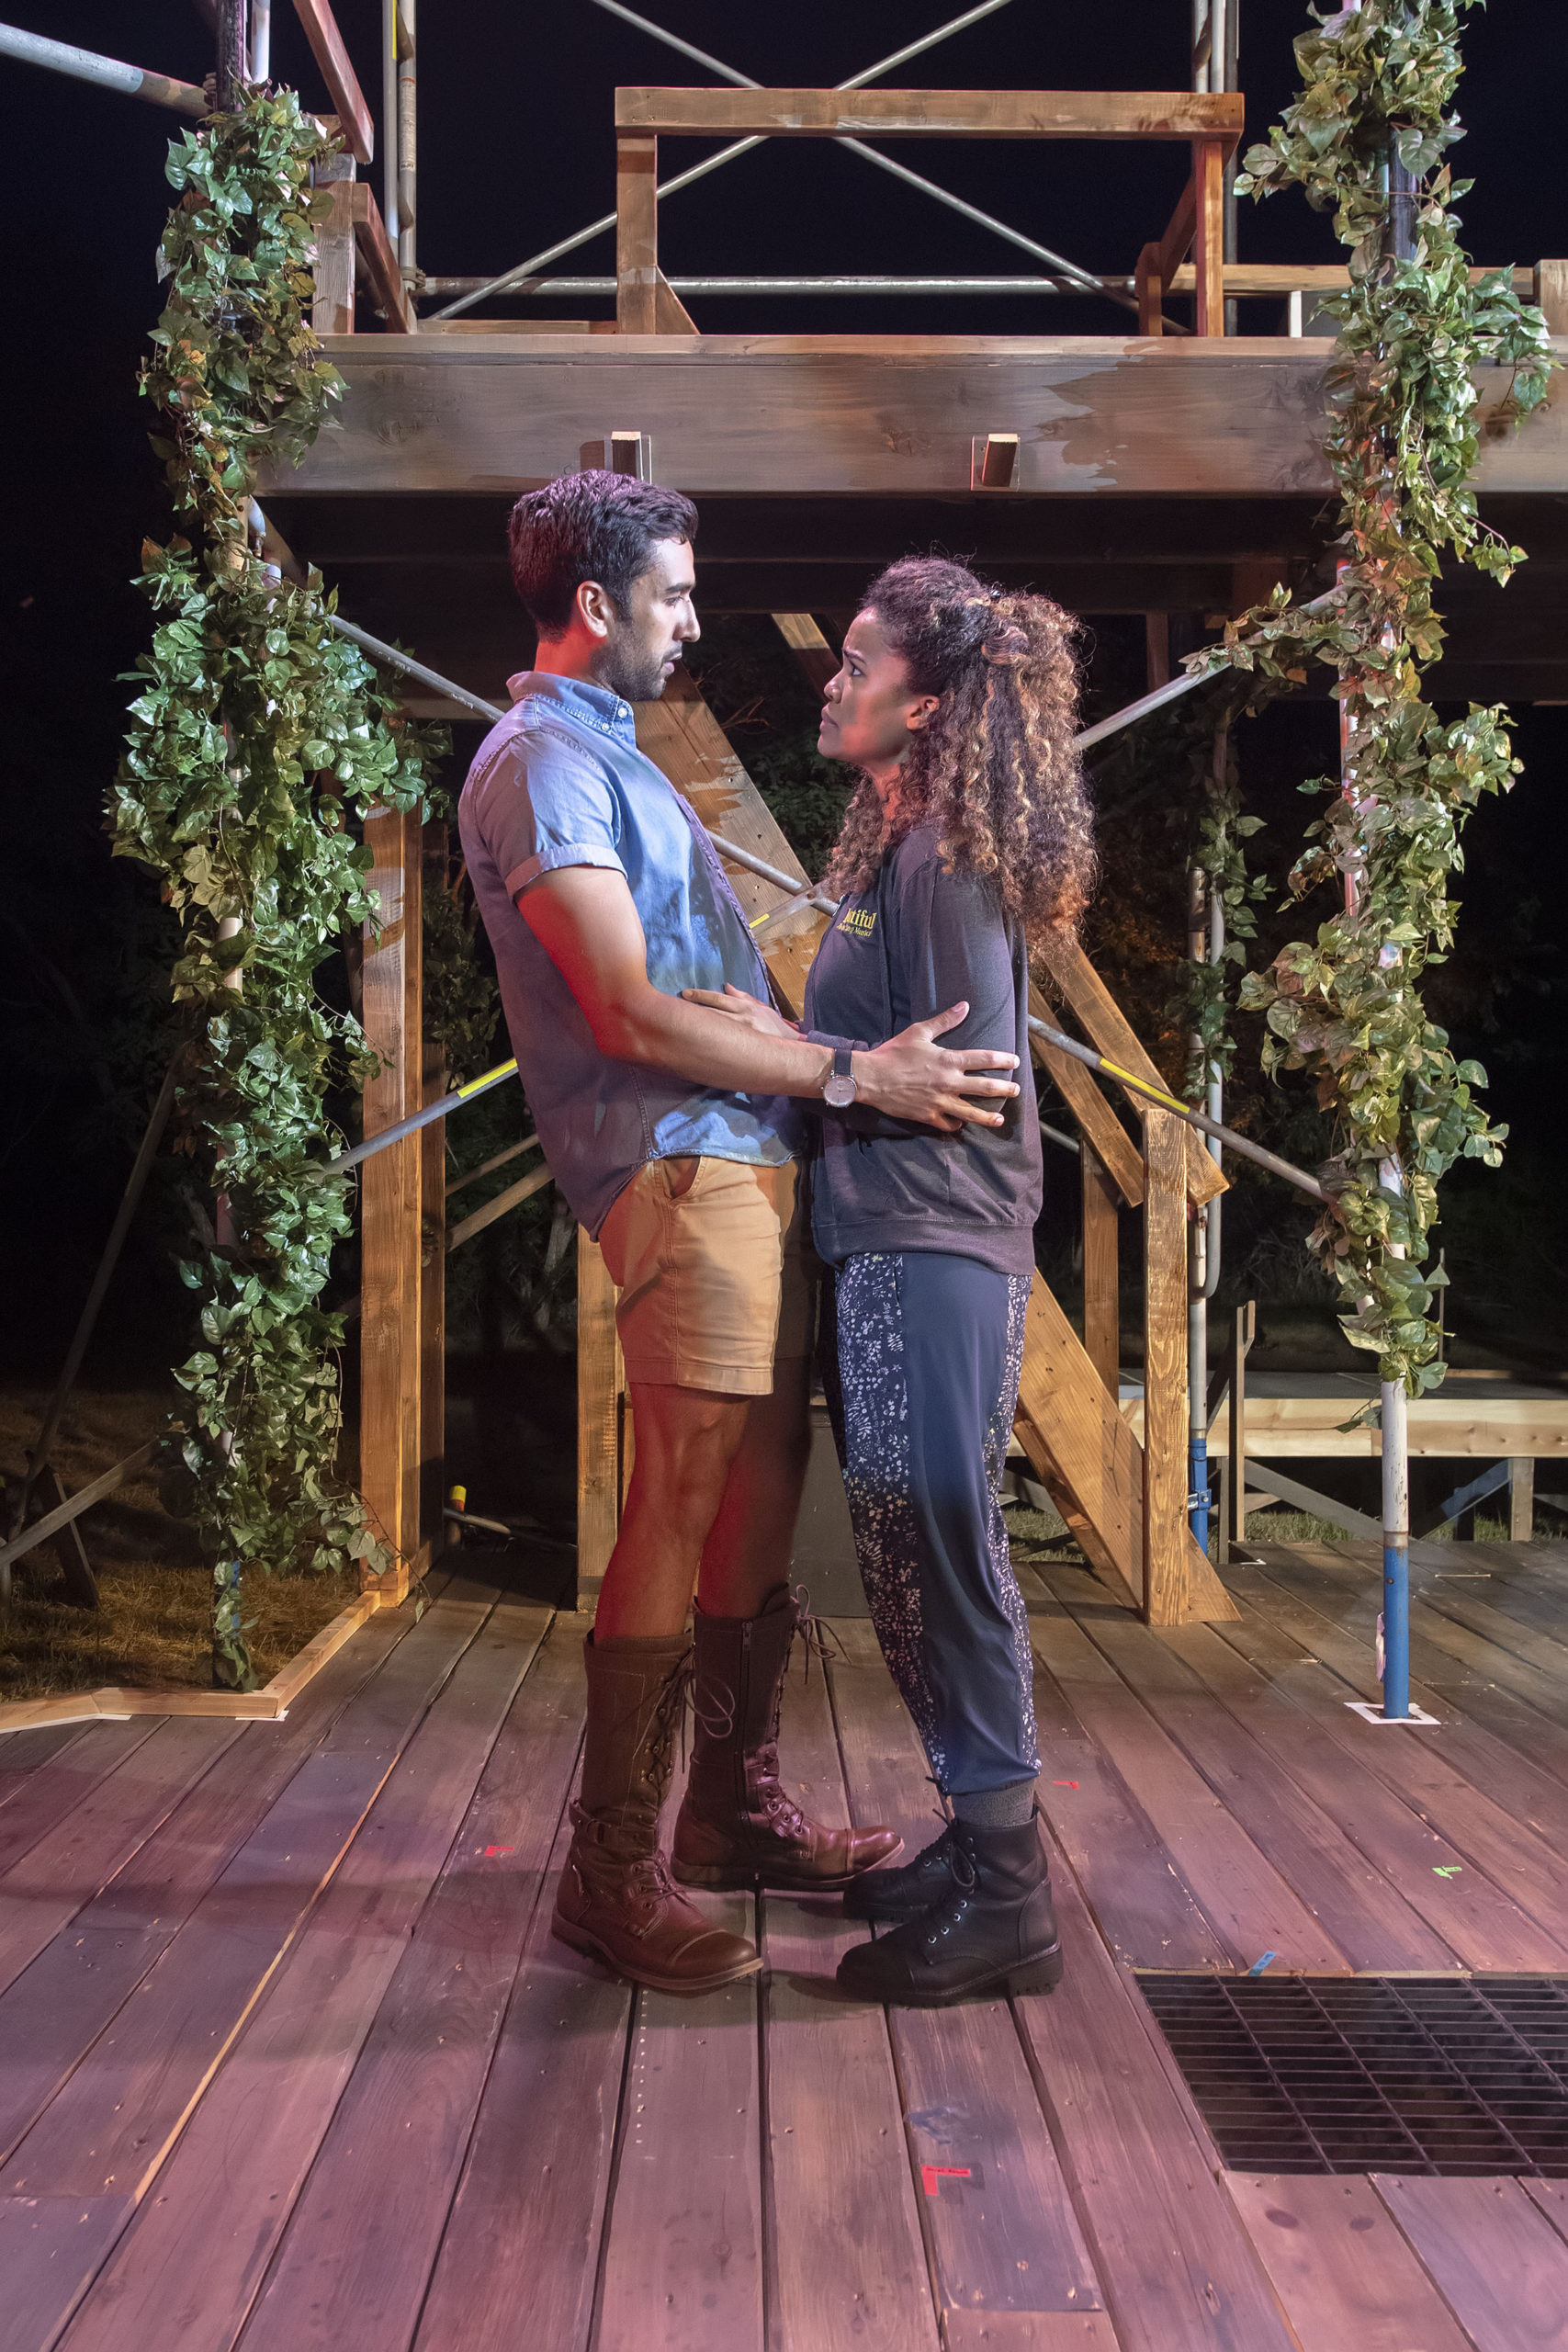 Sir Lancelot and Guenevere, played by Deven Kolluri and Britney Coleman, during a rehearsal of